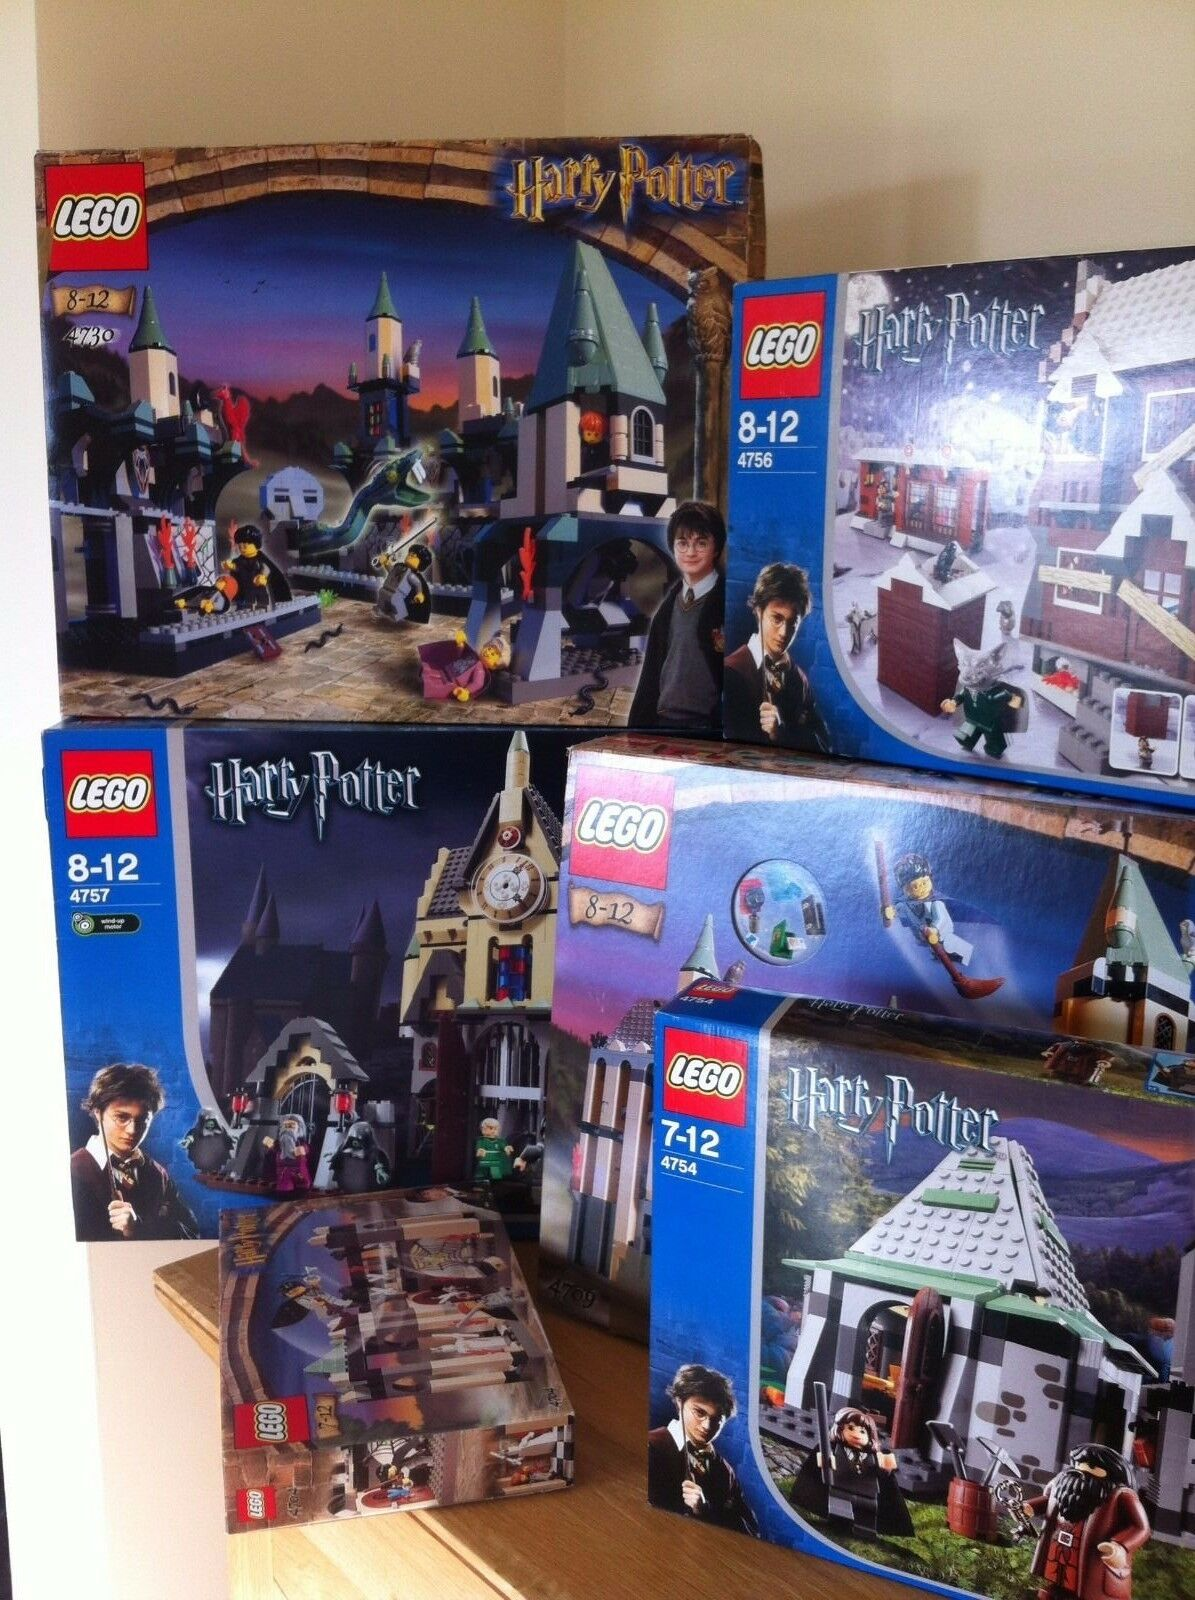 Harry Potter Lego Room of the Winged Keys 4704 100% Complete Rare 1st Edition